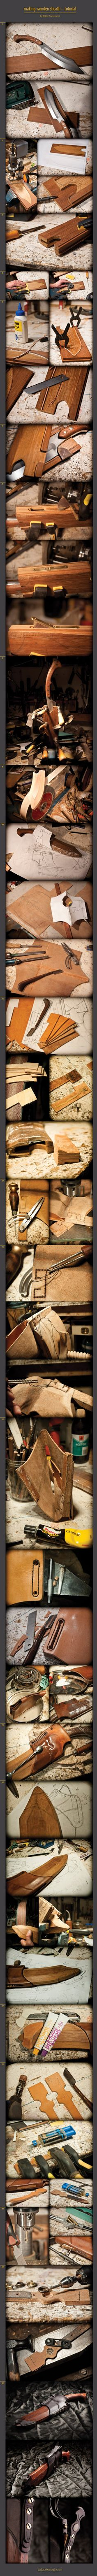 wooden sheath tutorial by WSi.deviantart.com on @deviantART